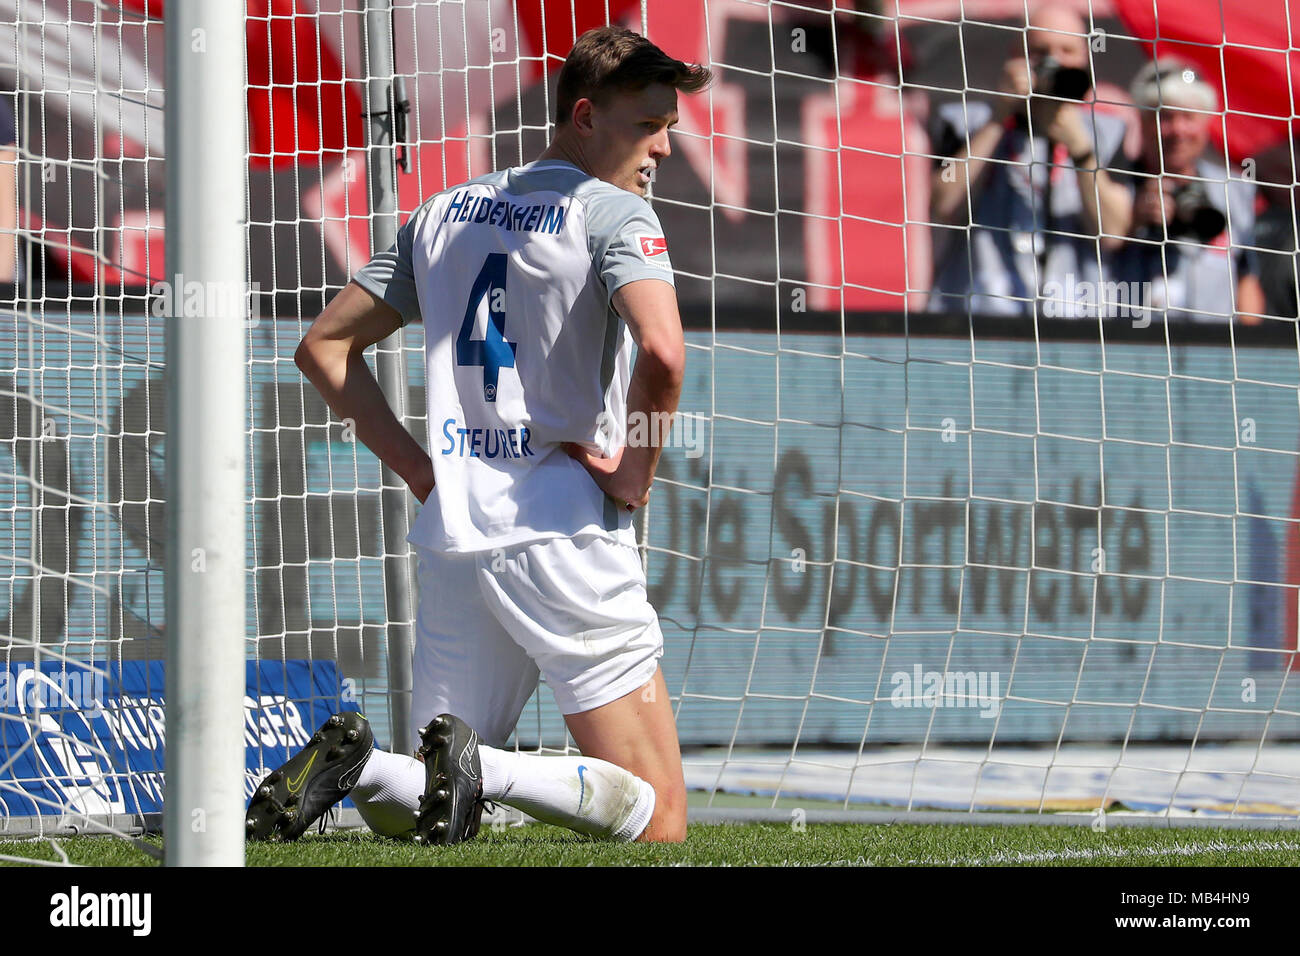 07 April 2018, Germany, Nuremberg, Soccer: 2nd Bundesliga, 1. FC Nuremberg vs 1. FC Heidenheim, in the Max Morlock Stadium. Heidenheim's Oliver Steurer kneeling on the grass after Nuremberg's scoring of the 3:1. Photo: Daniel Karmann/dpa - IMPORTANT NOTICE: Due to the German Football League·s (DFL) accreditation regulations, publication and redistribution online and in online media is limited during the match to fifteen images per match - Stock Image